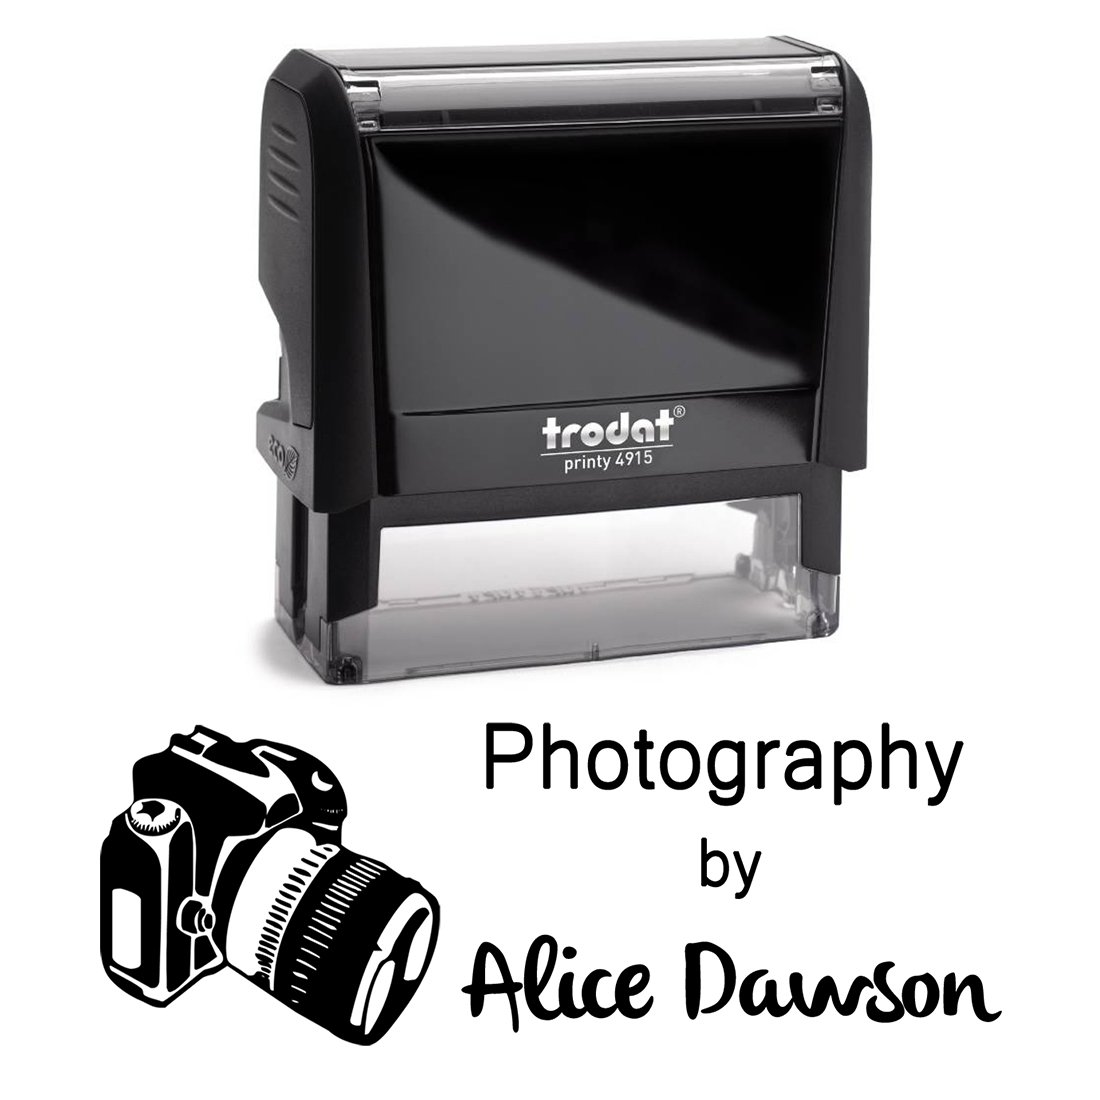 Black Ink, Photgrapher Camera Business Stamper Custom Self Inking Return Address Stamp Personalized – Perfect for Photography Business Labelling, Cards, Return Mail, Advertising